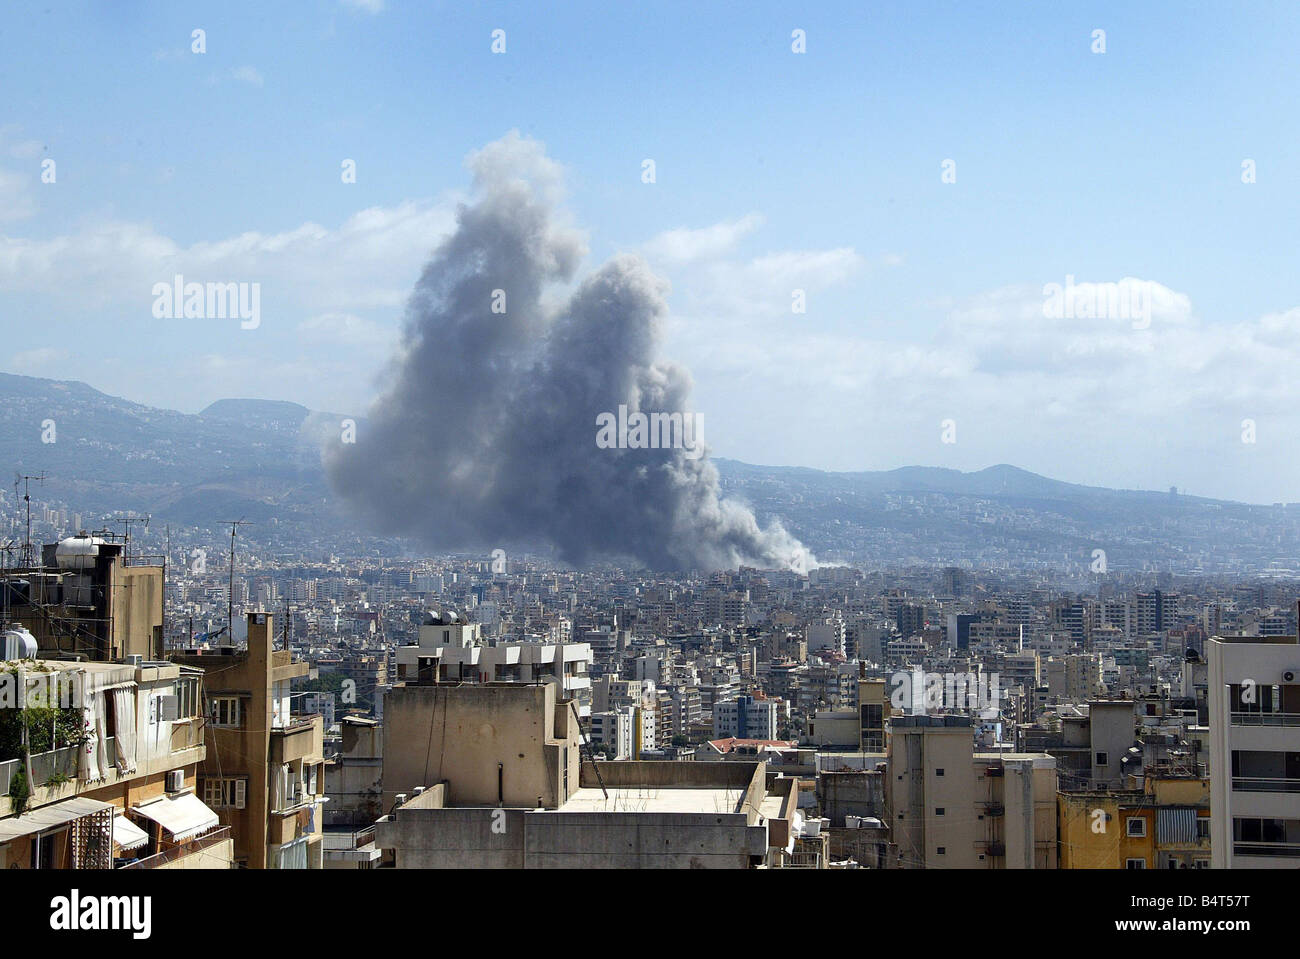 Beirut The conflict between Israel and Hezbollah forces shows no signs of stopping as smoke rises over the Beirut - Stock Image